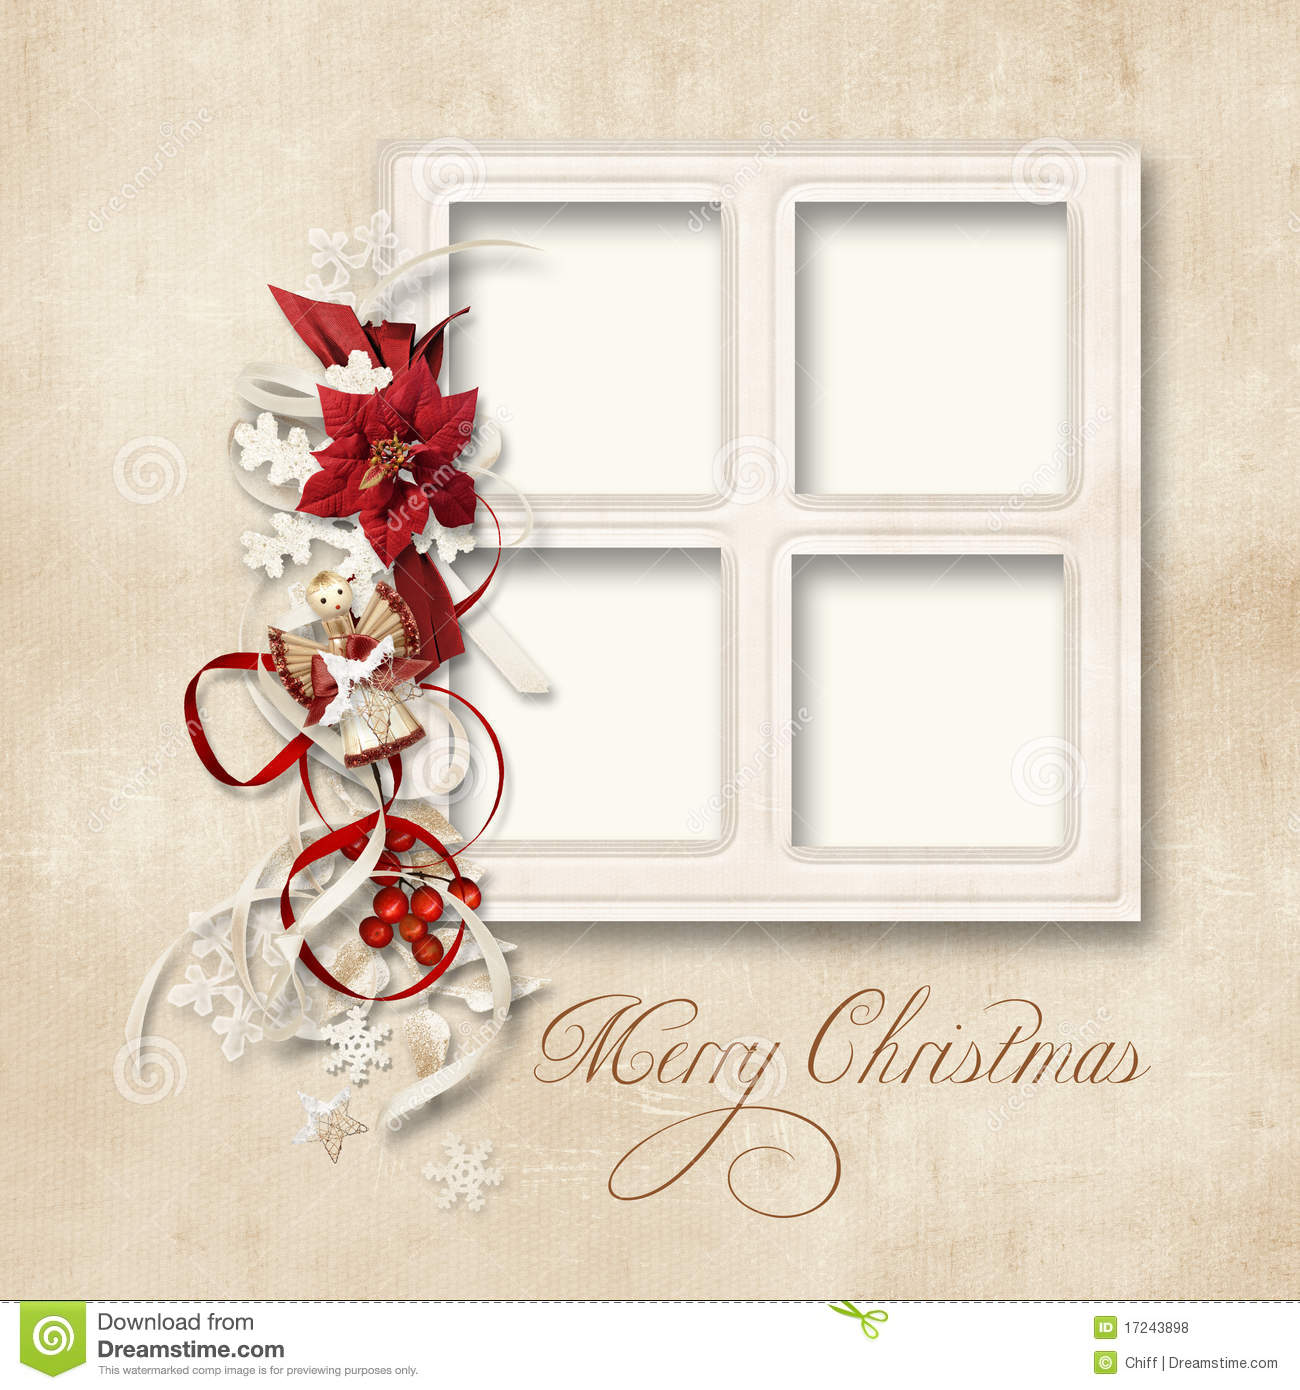 Christmas Greeting Card For A Family Stock Illustration